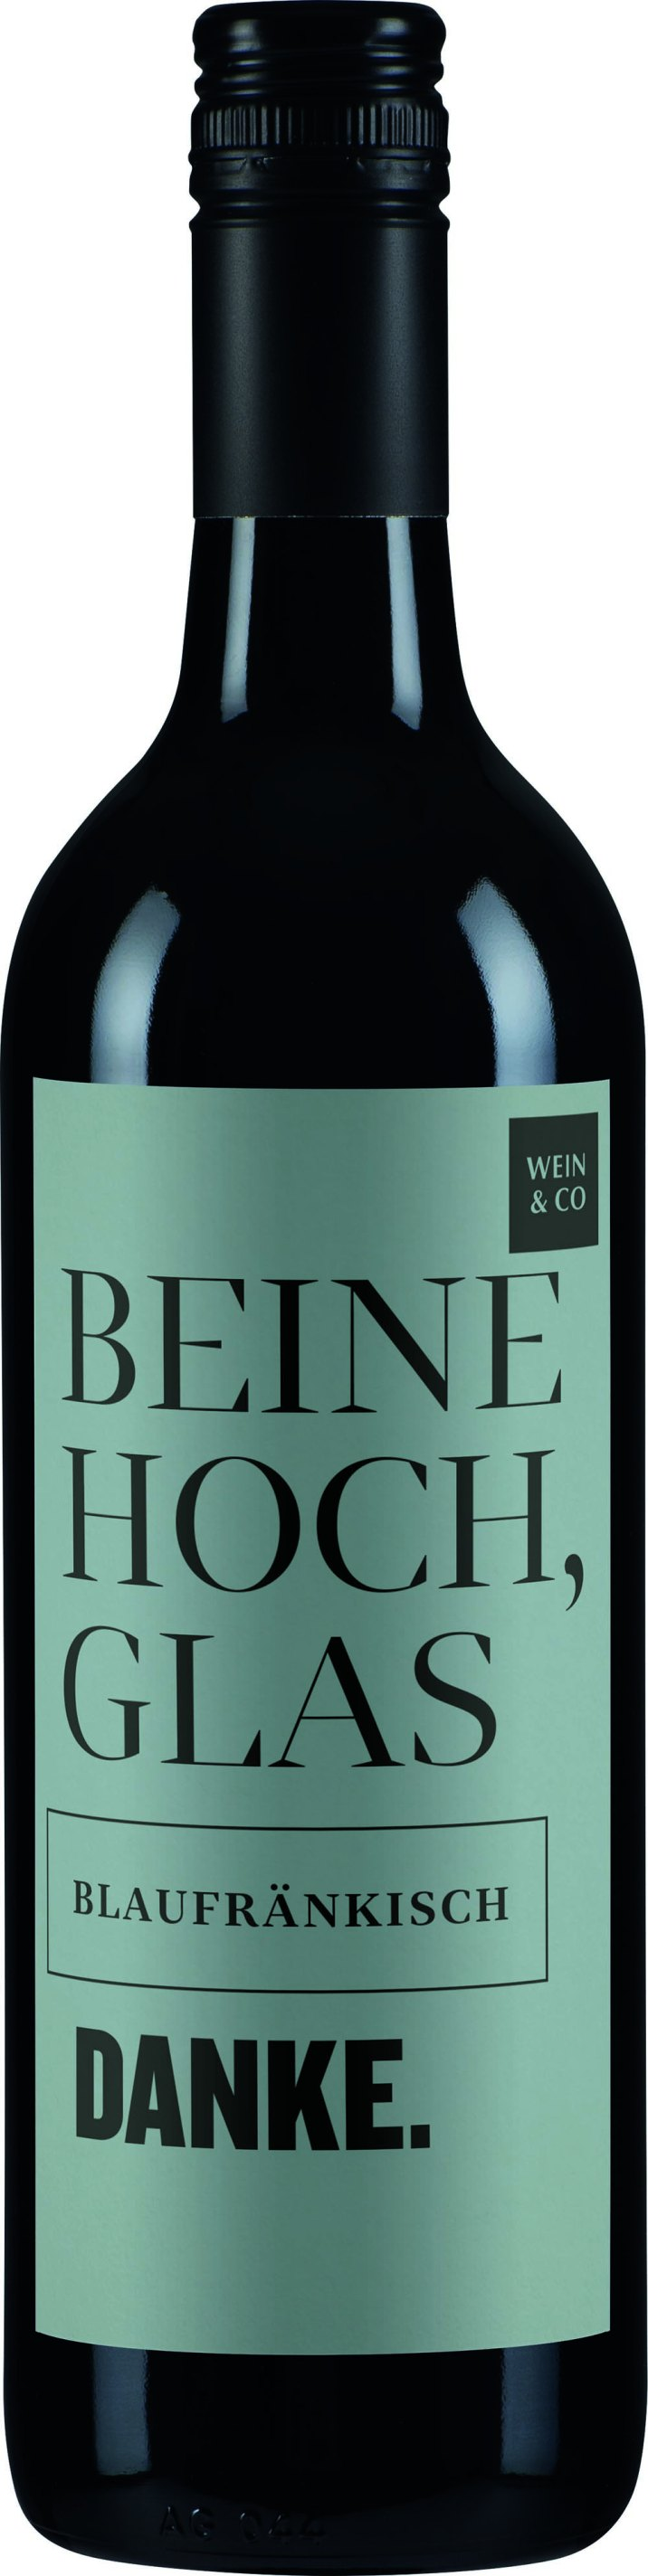 64321217_weinco_selection_blaufraenkisch